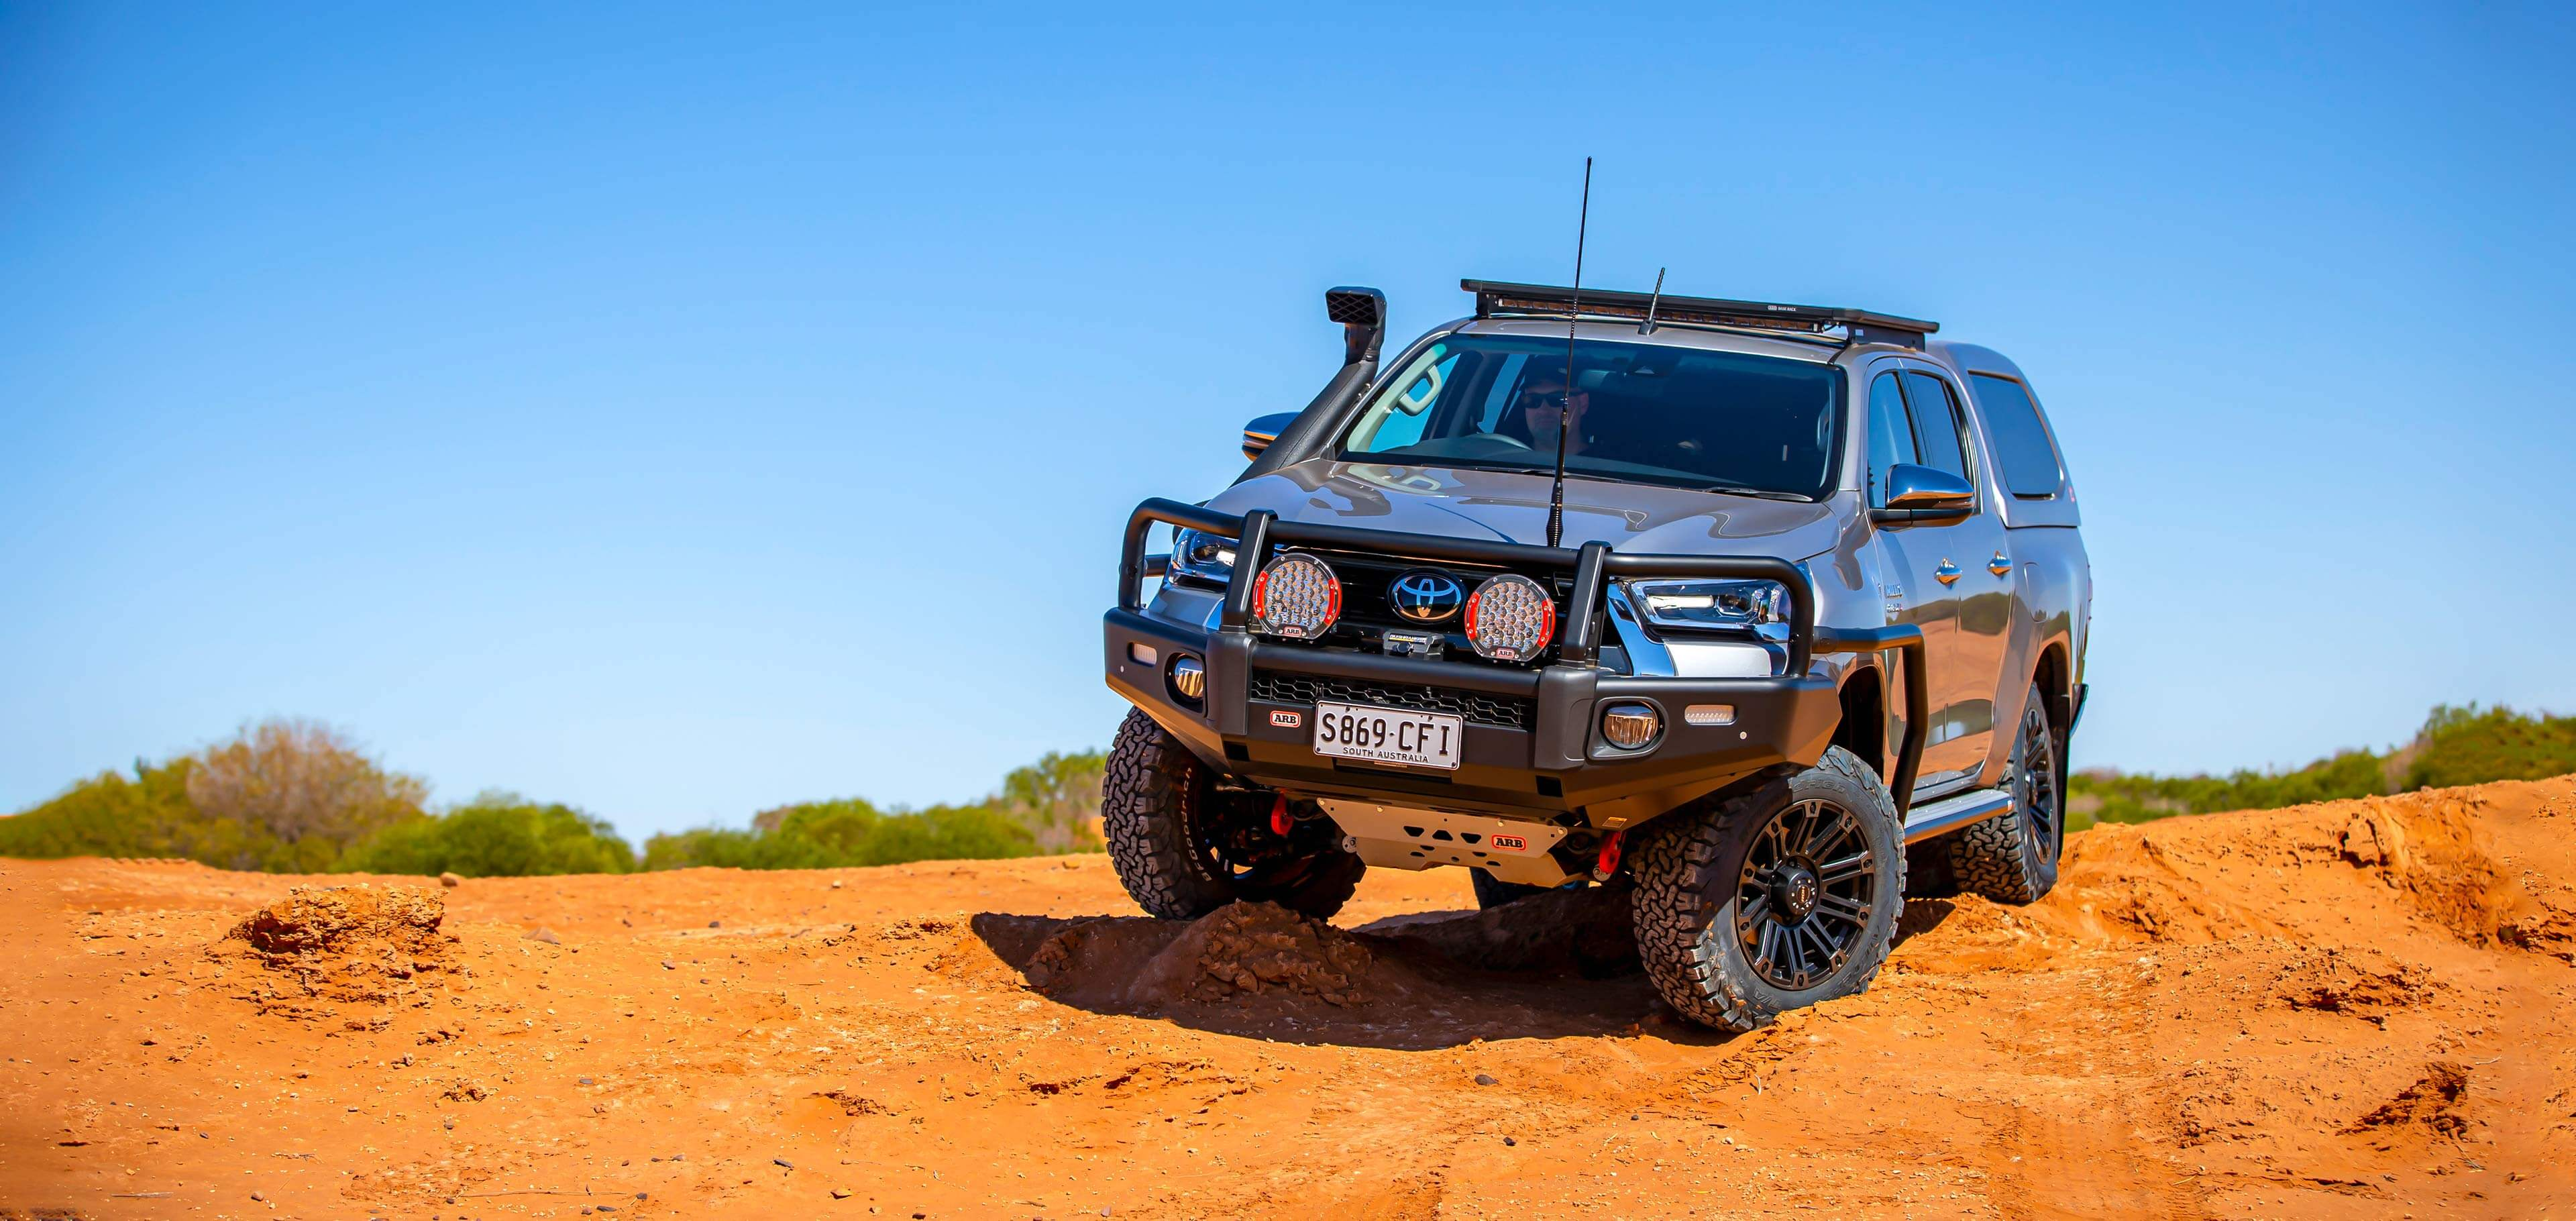 Arb 4x4 Accessories For Toyota Hilux 2020 Present